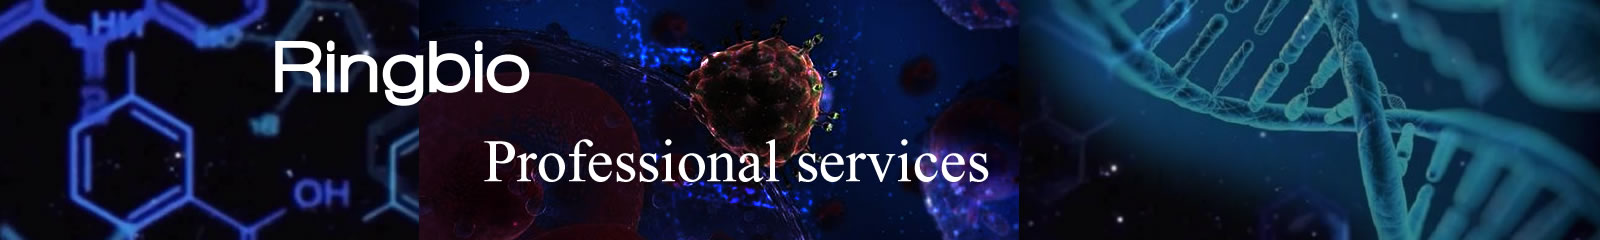 Professional Services from Ringbio